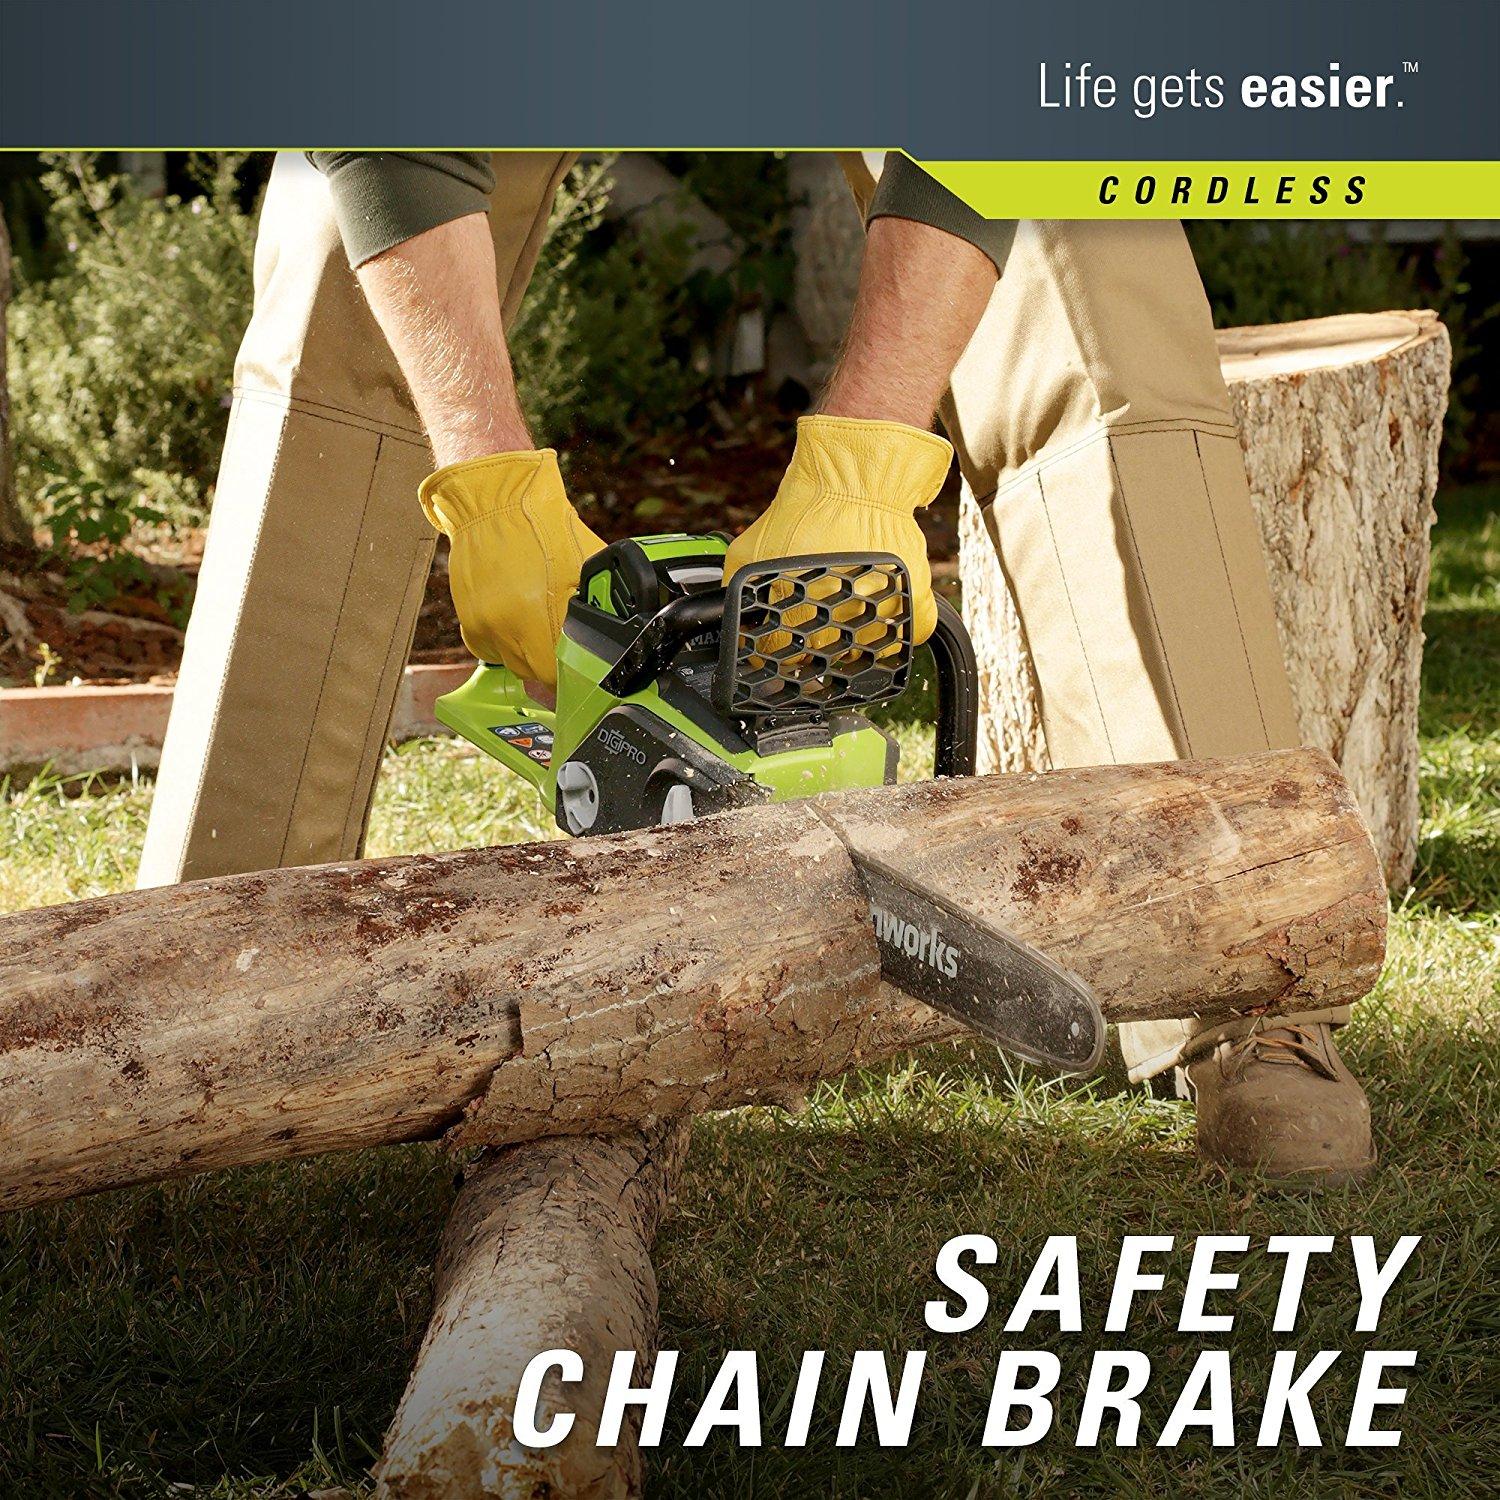 GreenWorks_DigiPro_Cordless_chainsaw